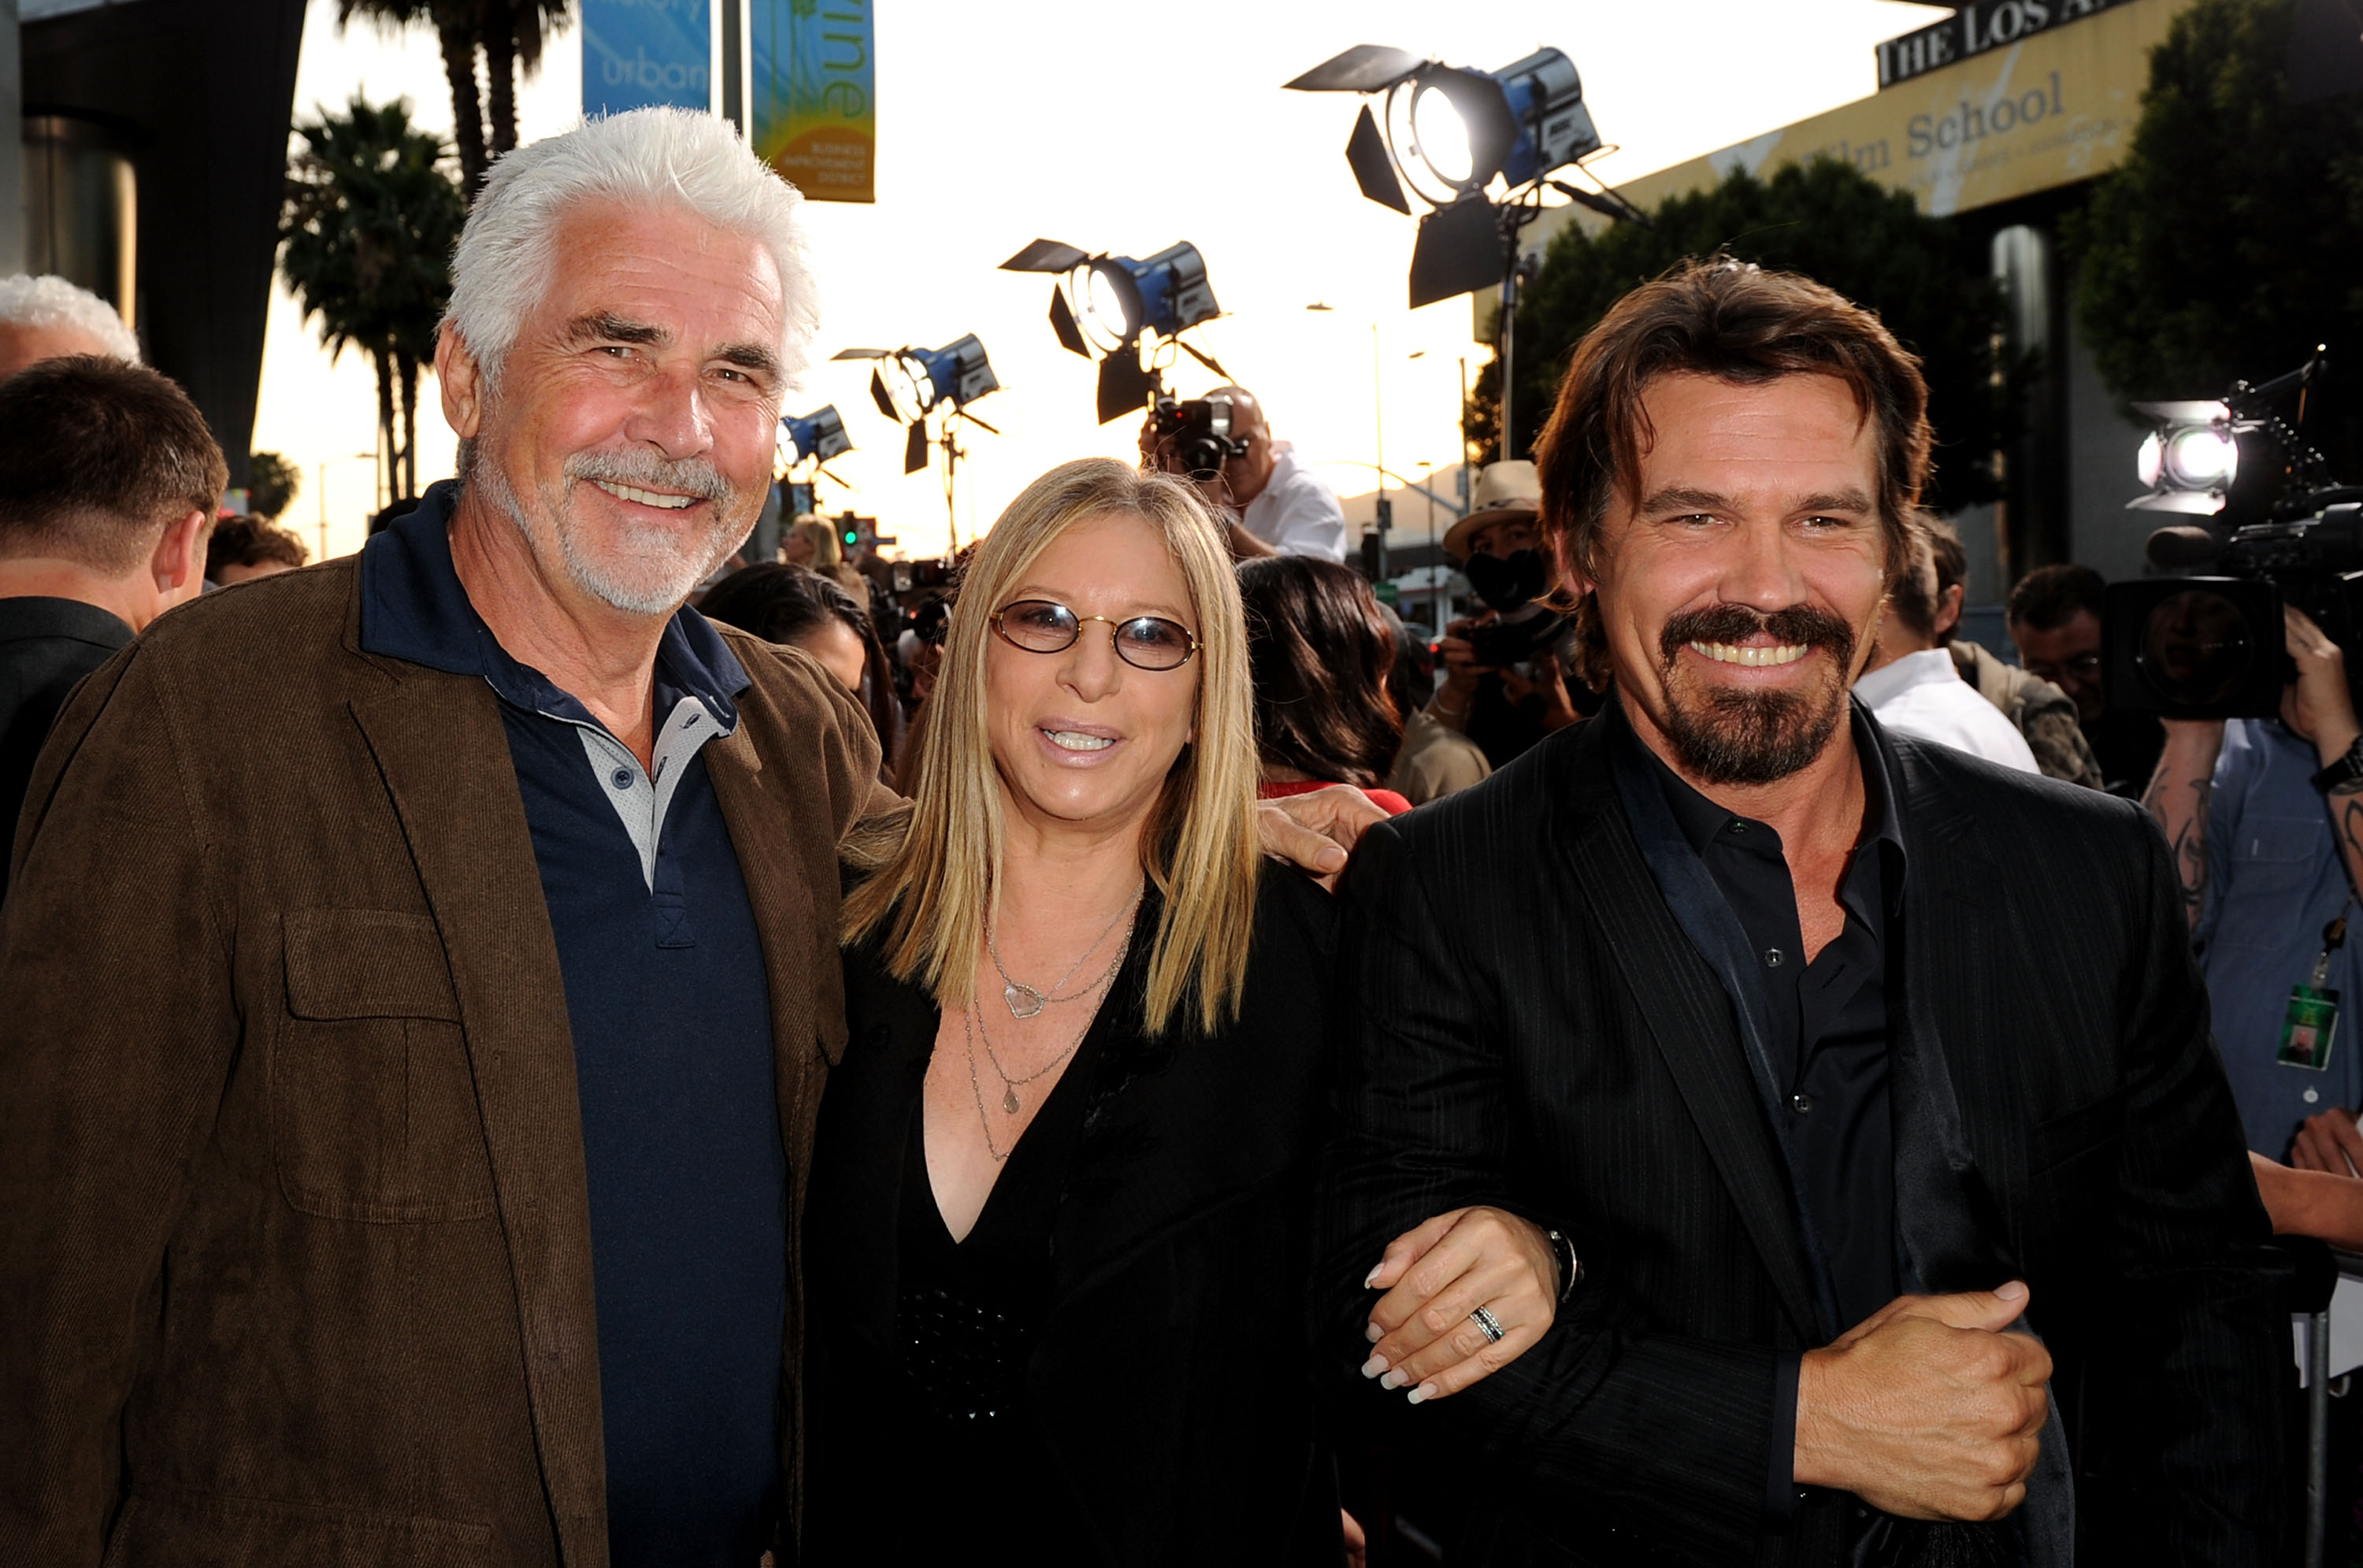 James Brolin Children And james brolin at laJosh Brolin Kids